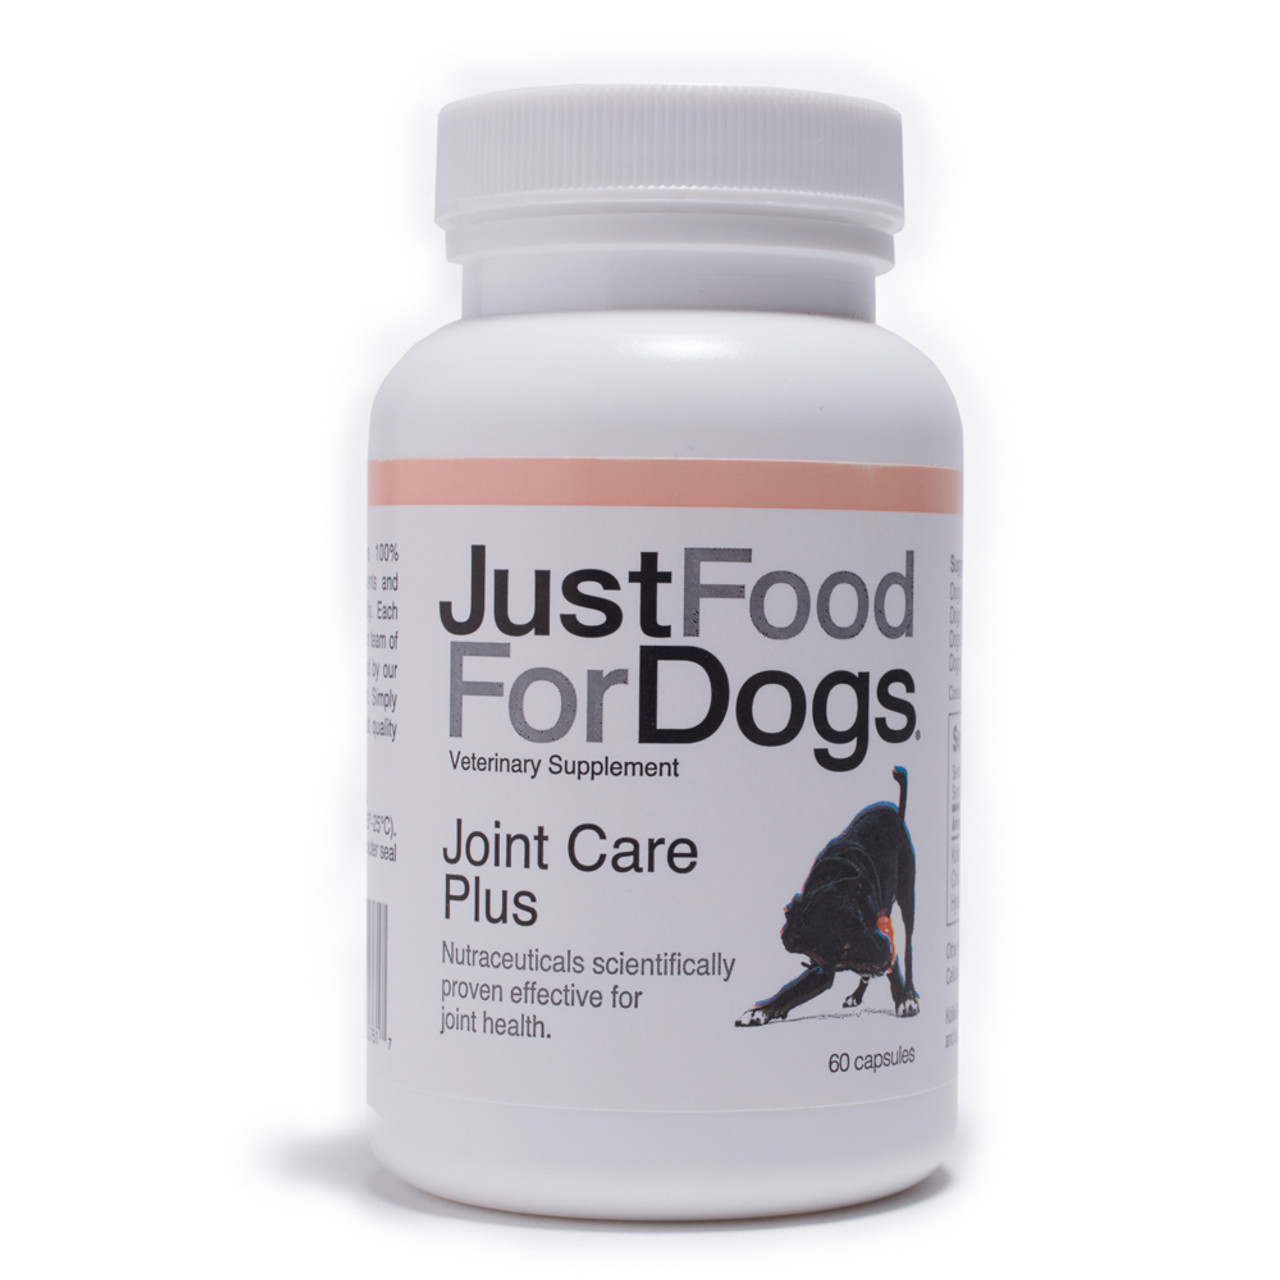 JustFoodForDogs Joint Care Plus Supplement for Dogs